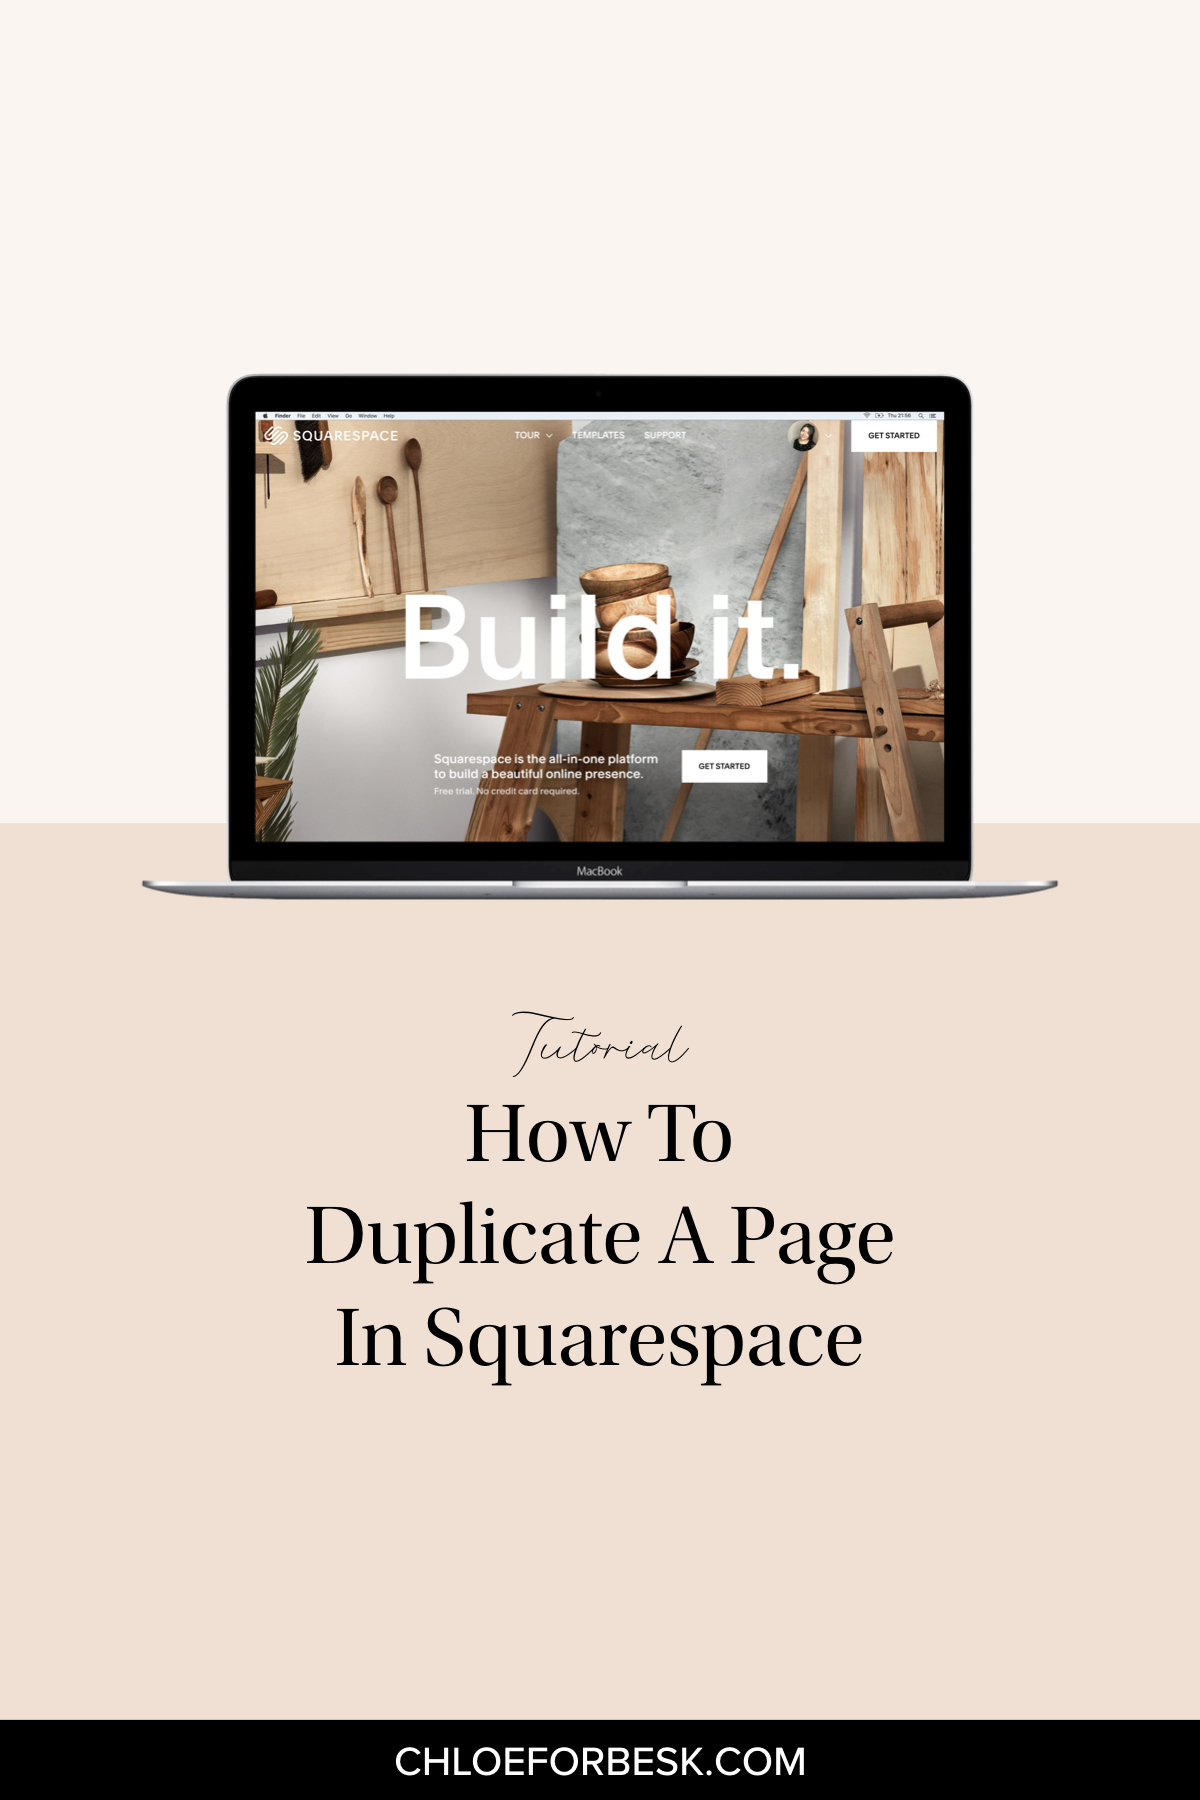 How To Duplicate A Page In Squarespace.001.jpeg